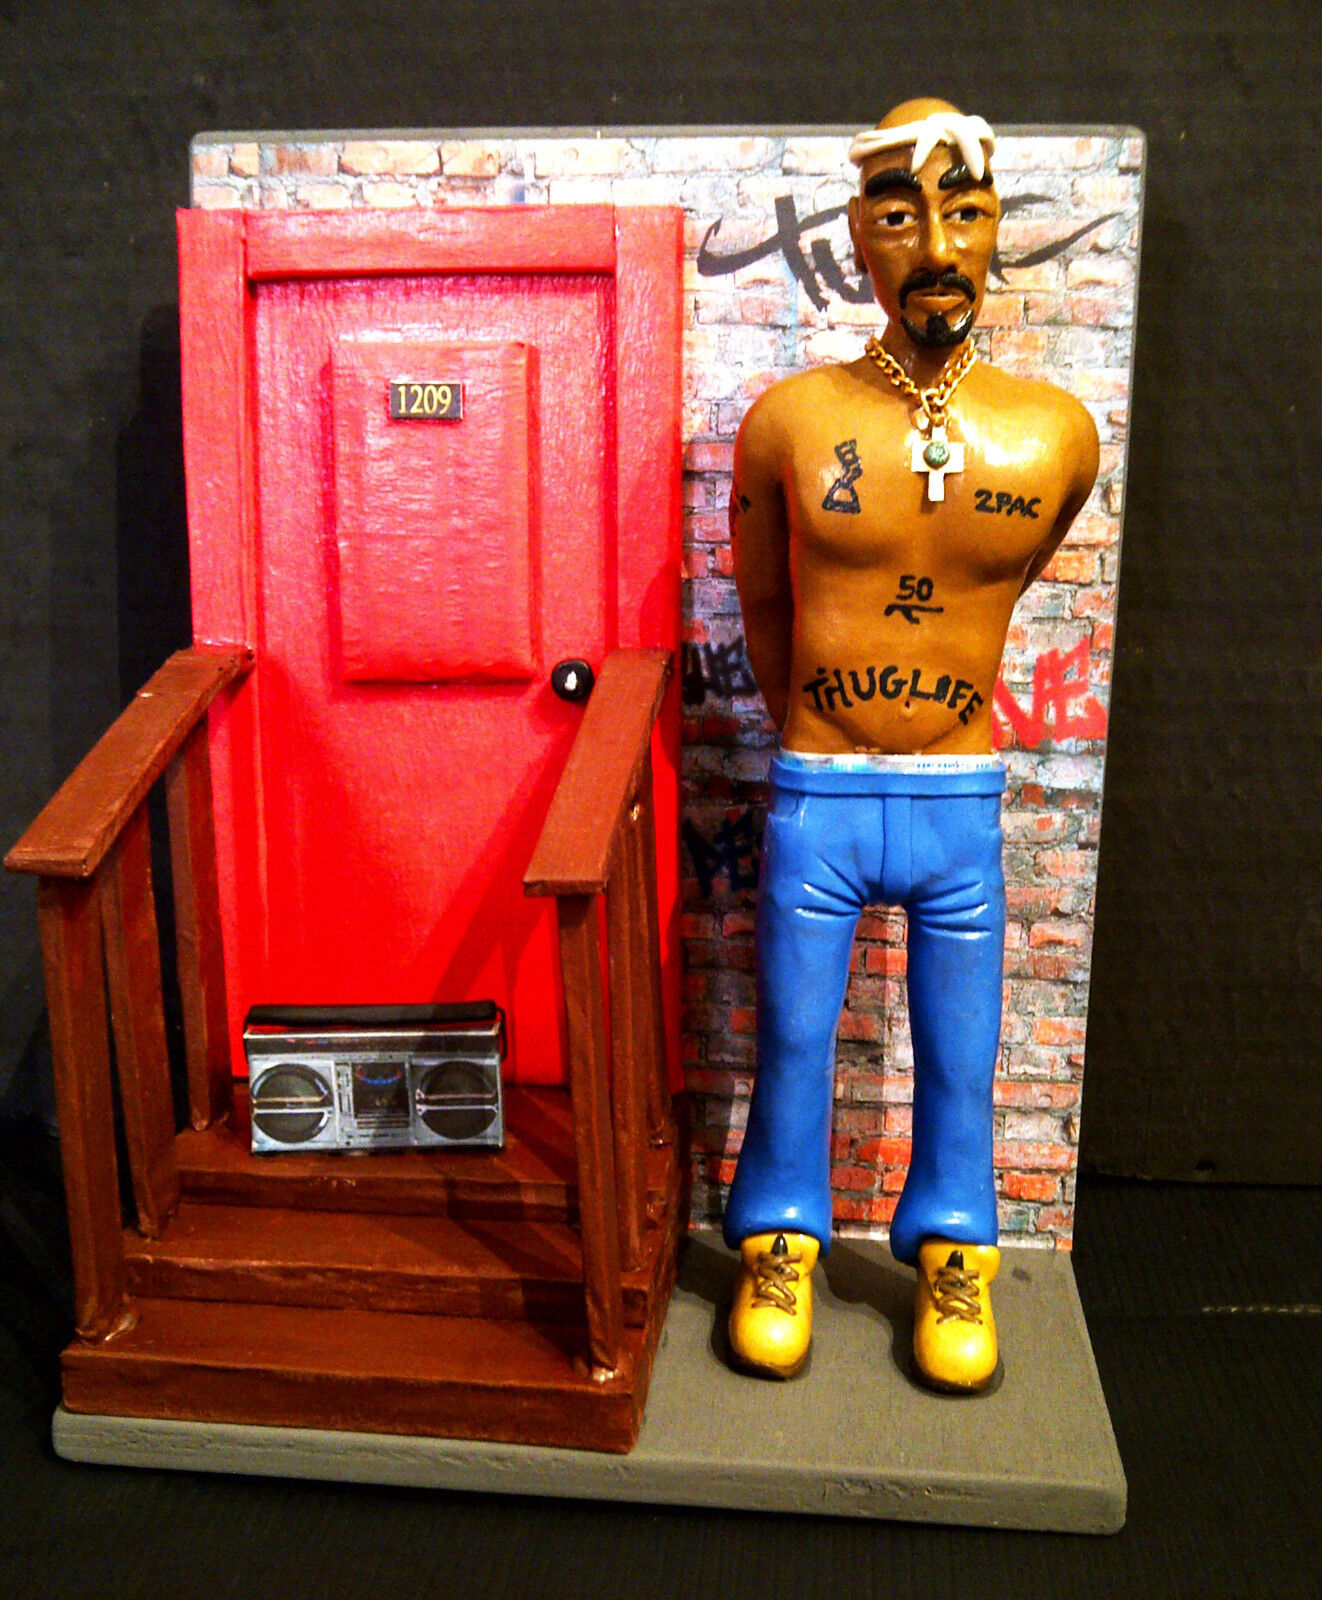 Statuina - Action Figures TUPAC Shakur - 2PAC con con con DIORAMA ghetto Harlem 32aa67